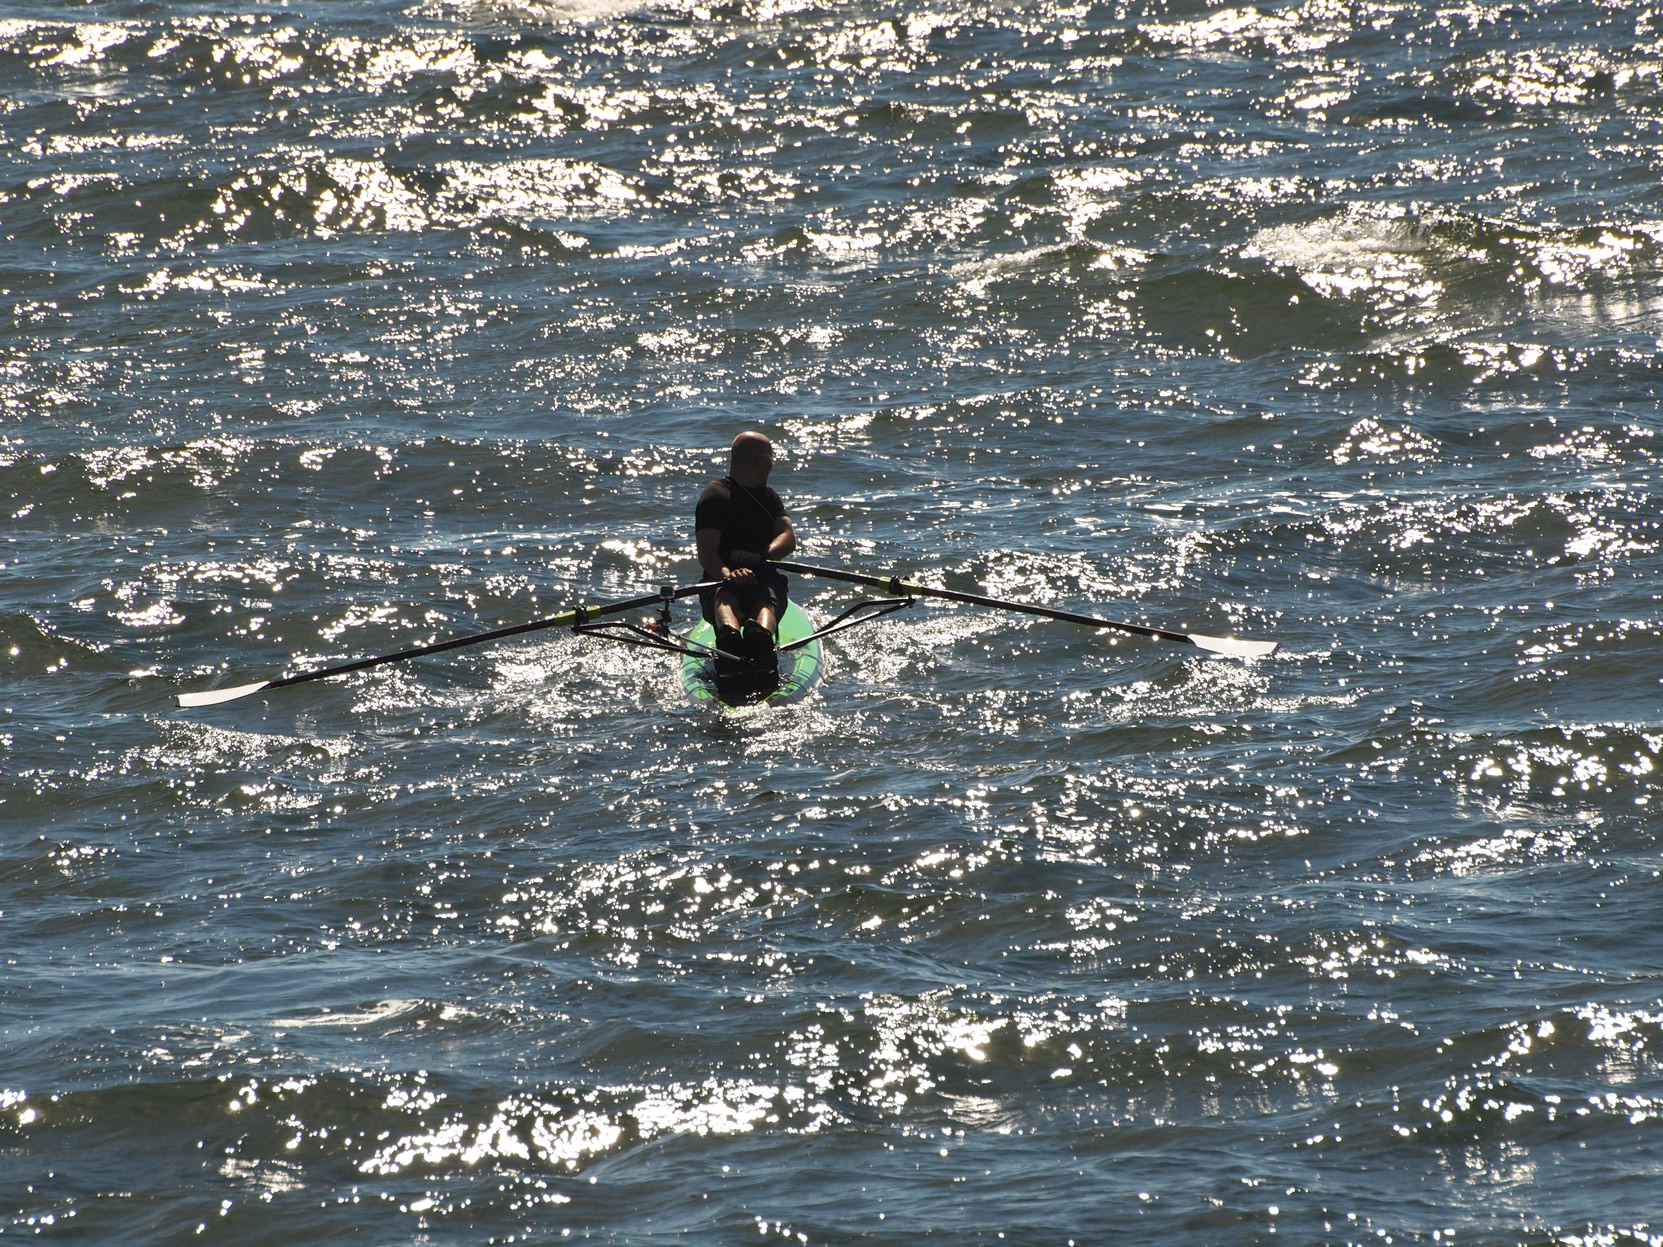 oar-board-stand-up-paddle-rower-clubs-whitehall-rowing-and-sail-julian